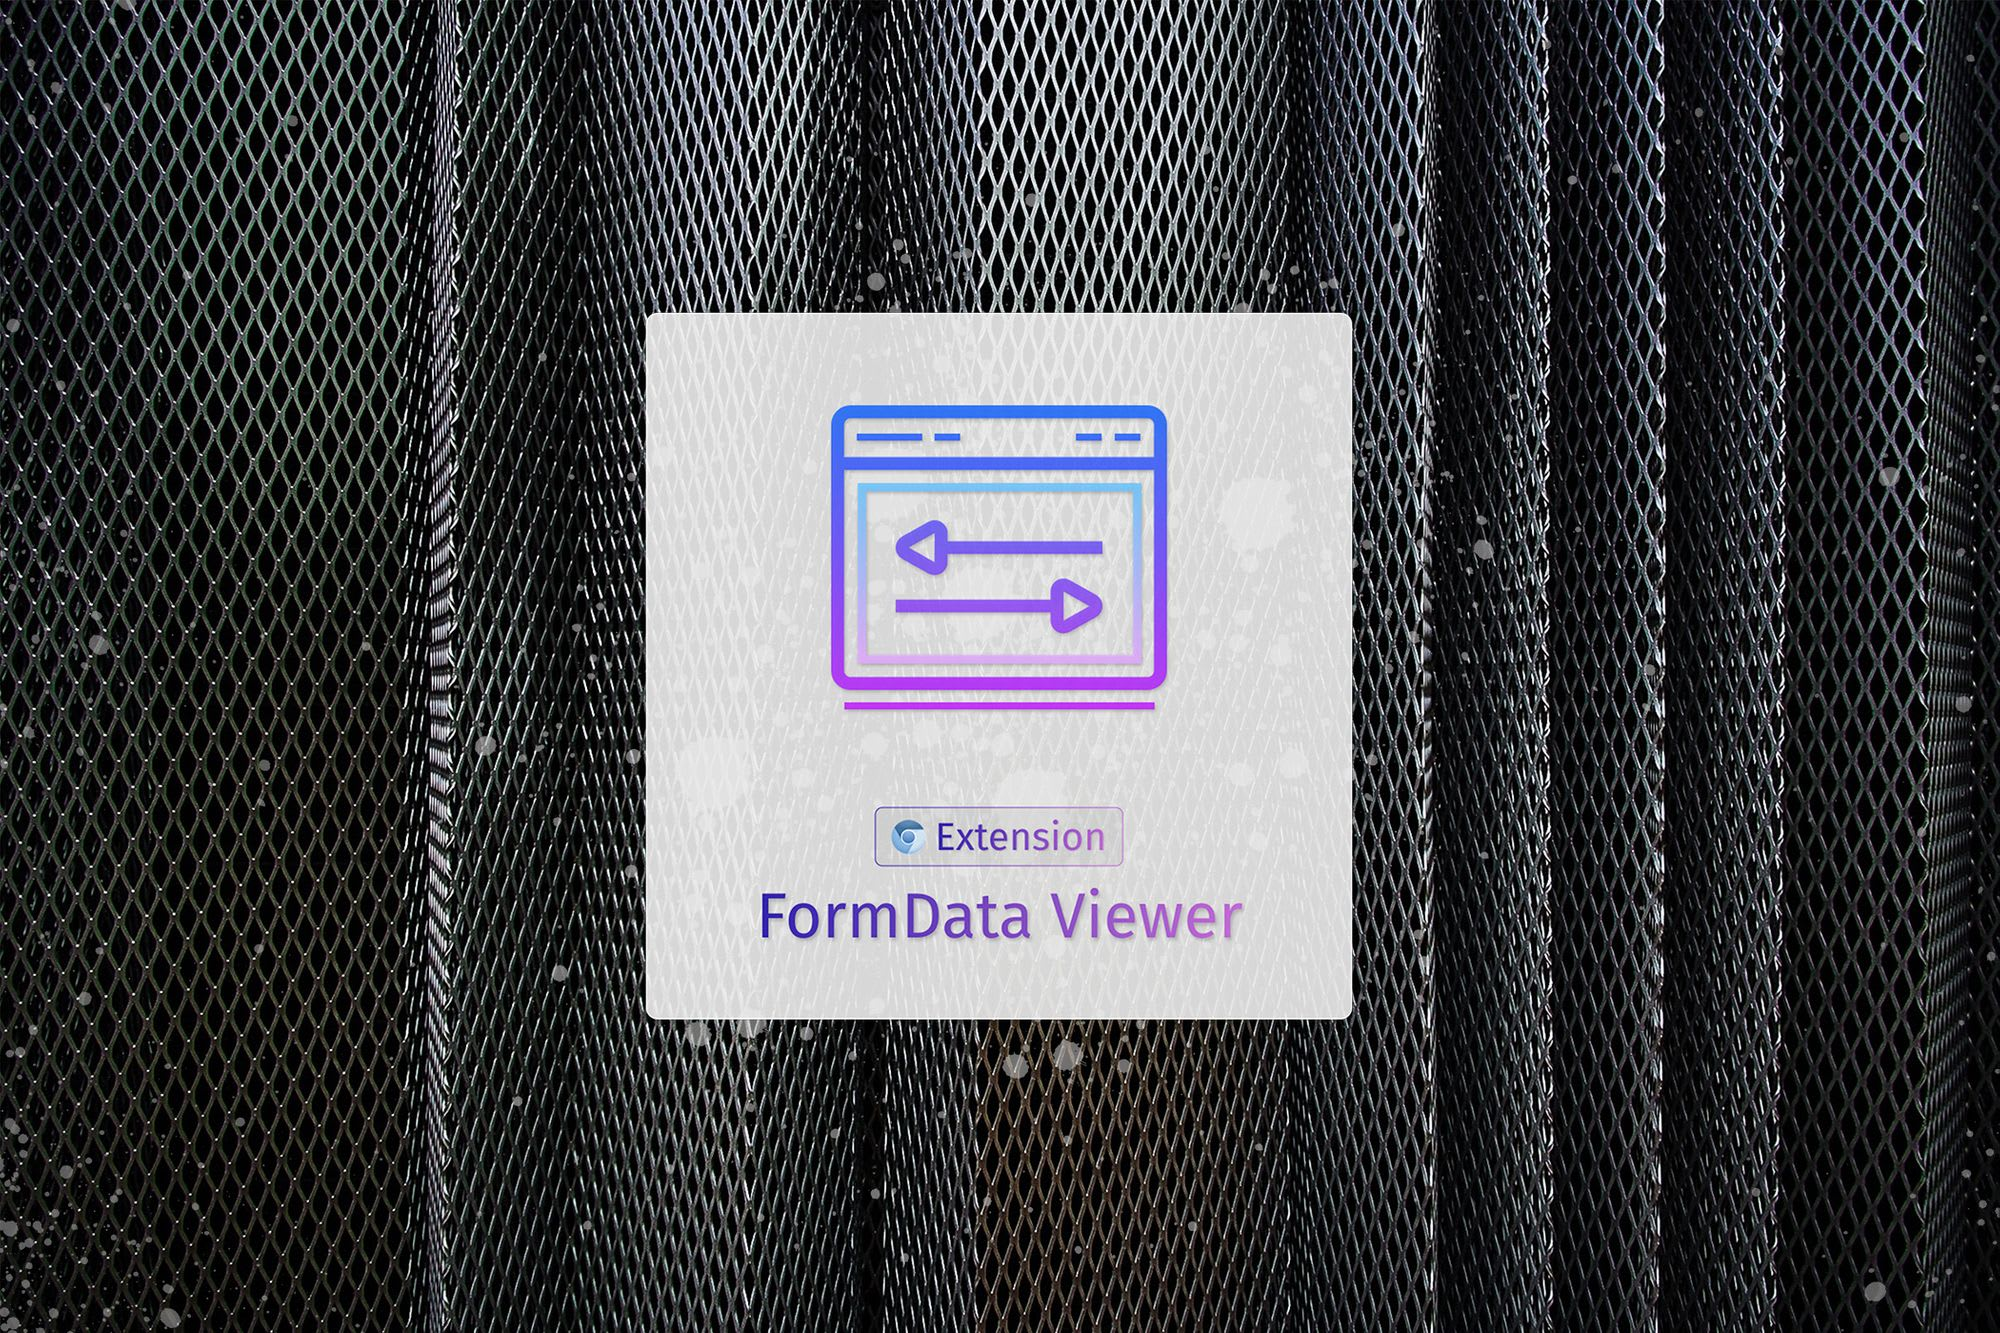 Introducing the FormData Viewer Extension